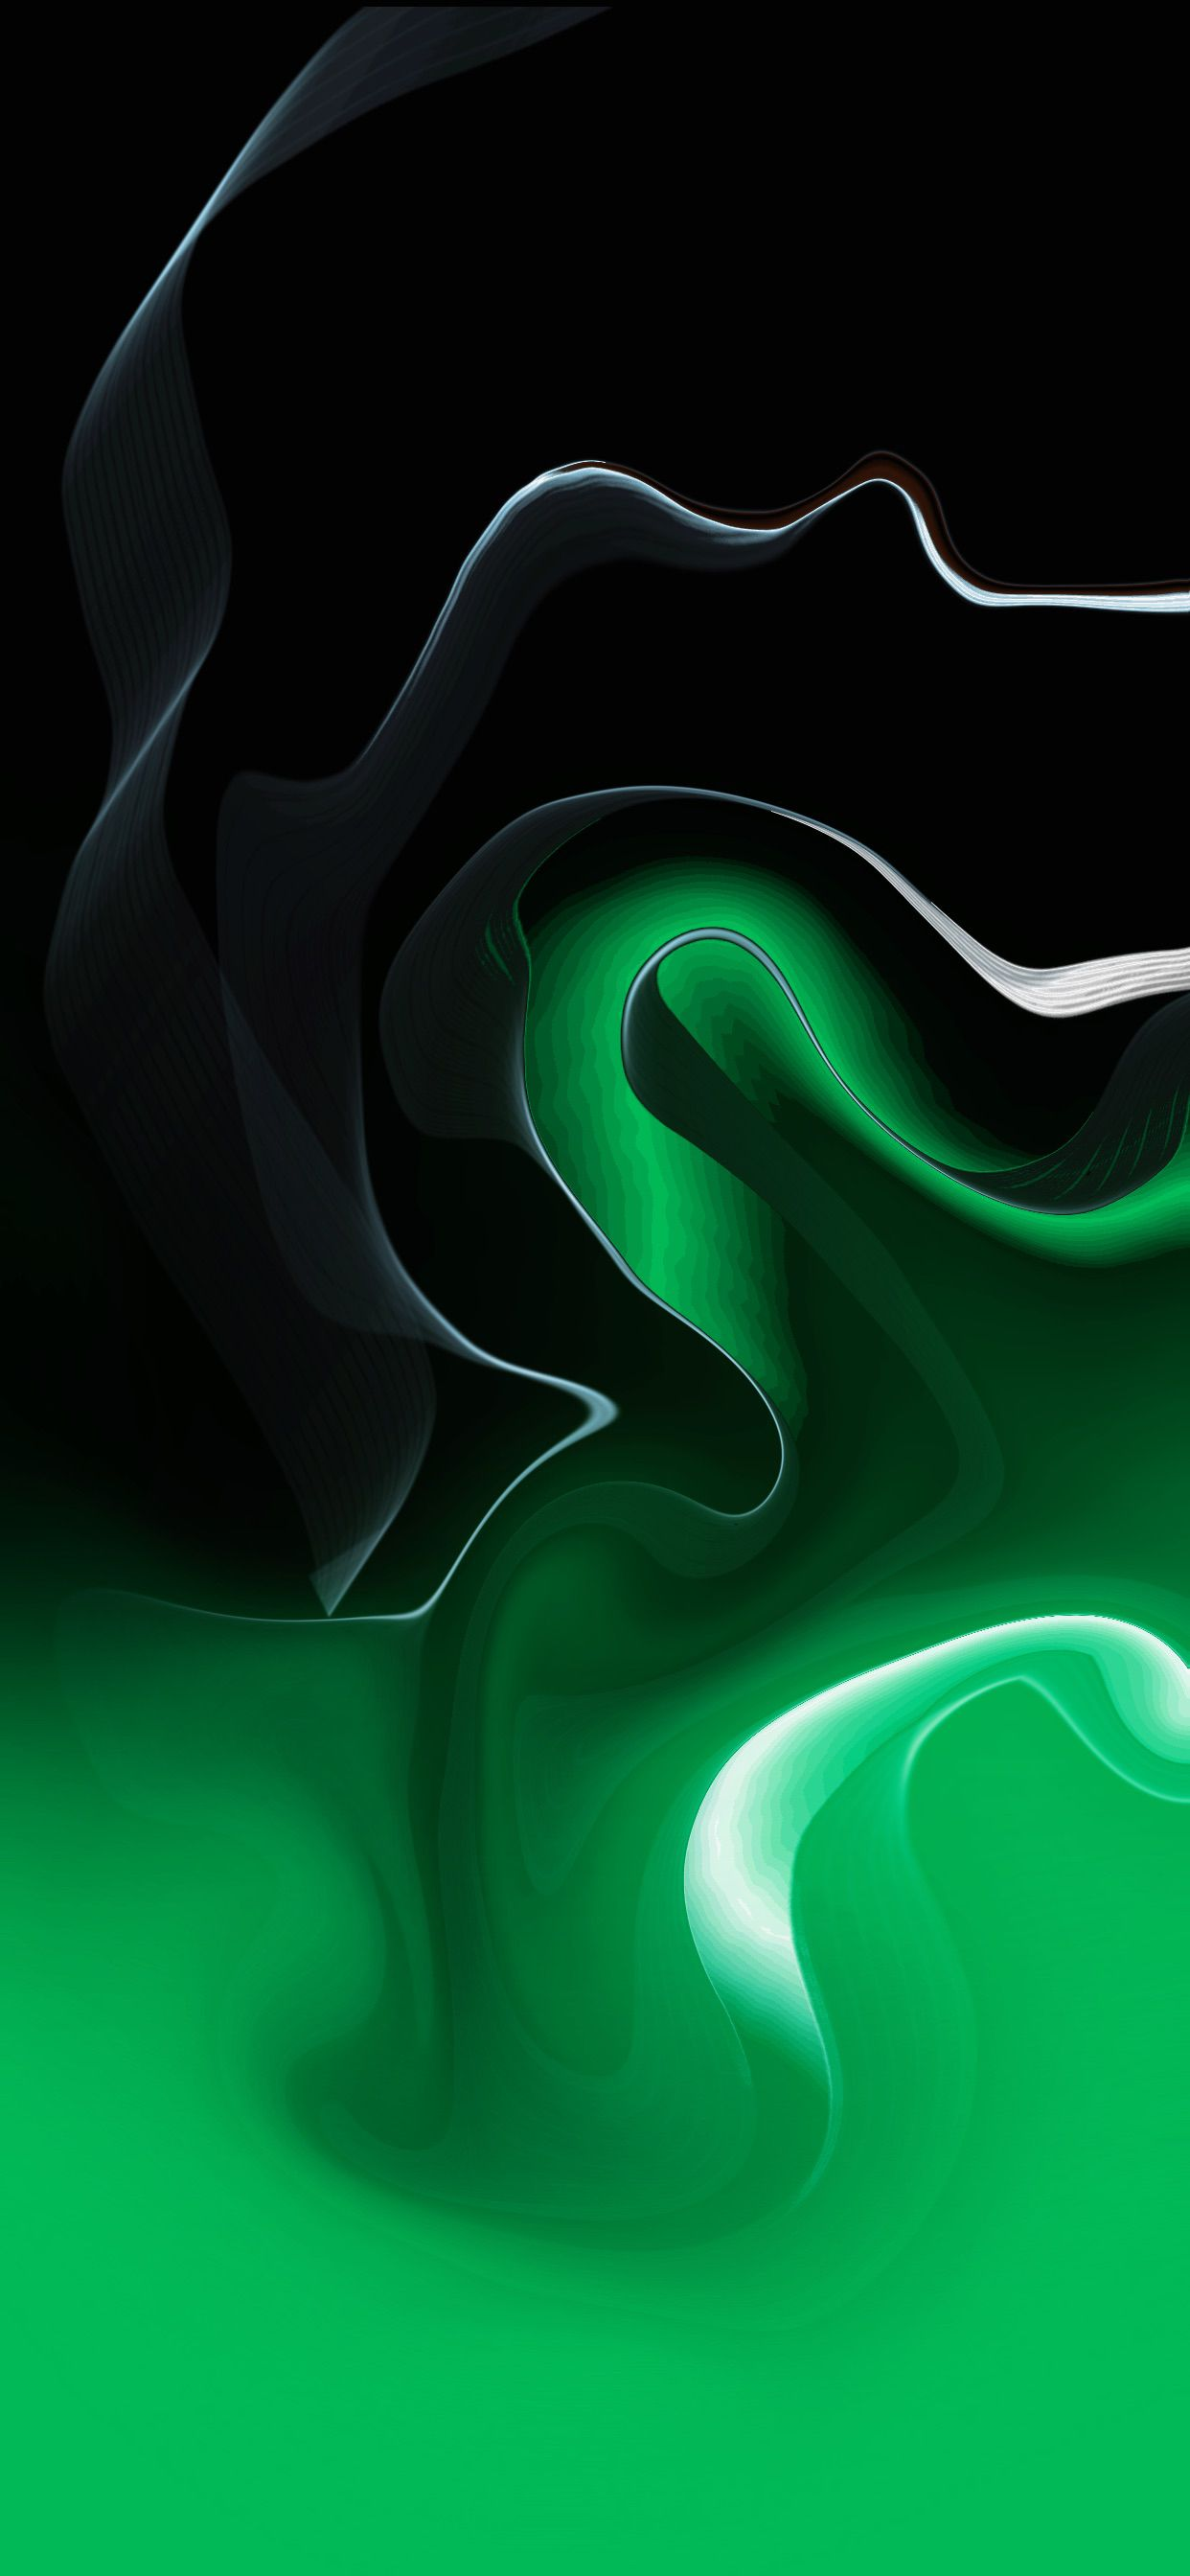 Green And Black Wallpaper For Iphone